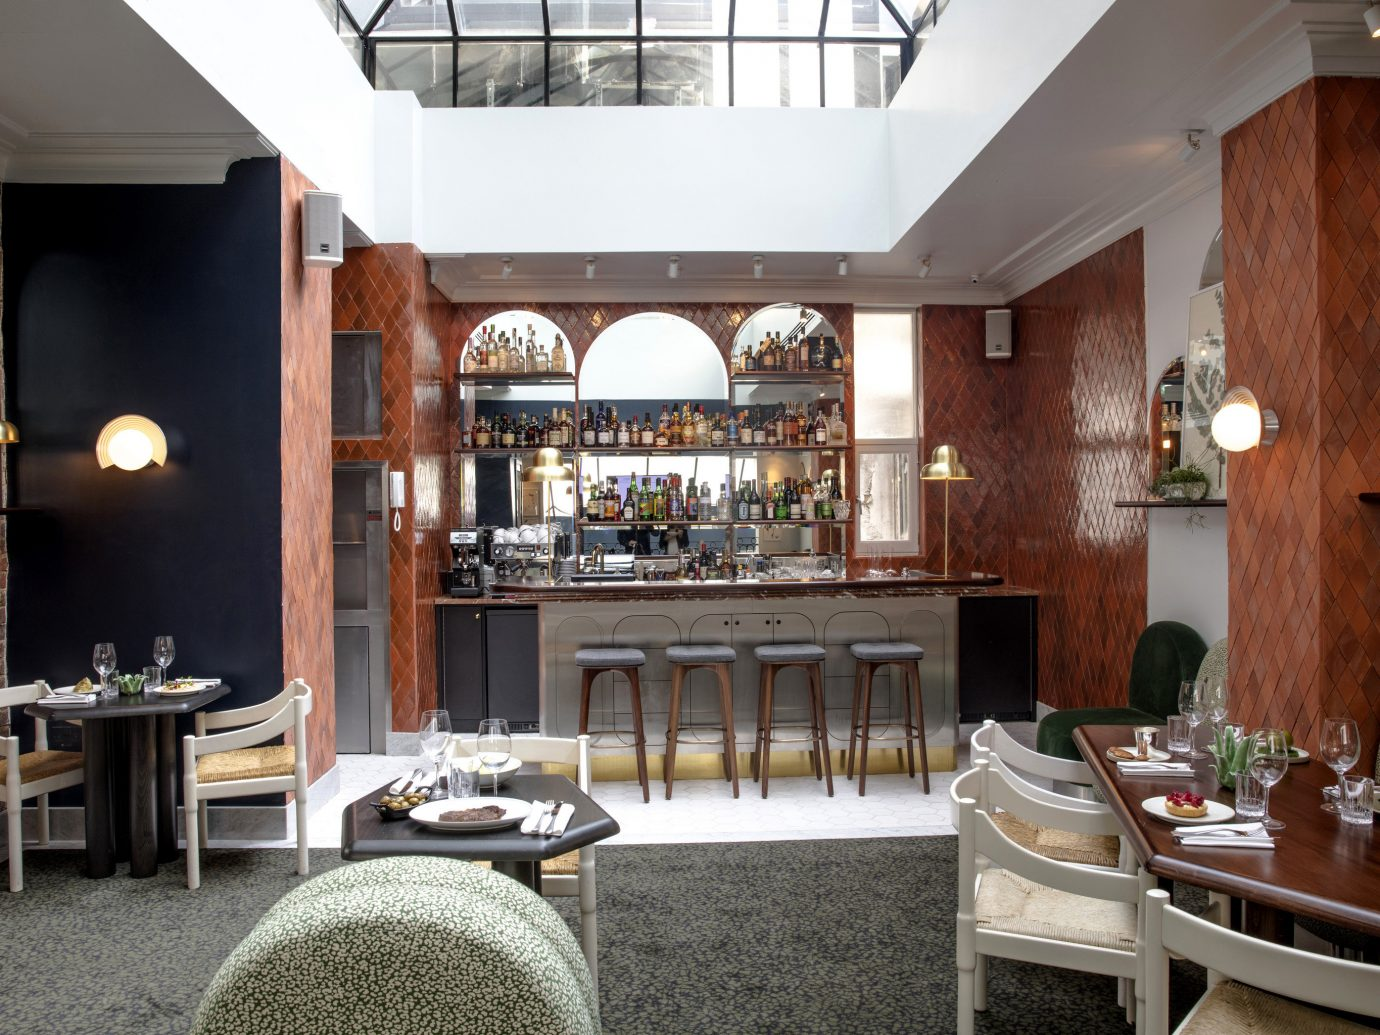 Boutique Hotels Hotels London Romantic Hotels indoor floor chair Living room ceiling restaurant interior design Dining furniture café table area